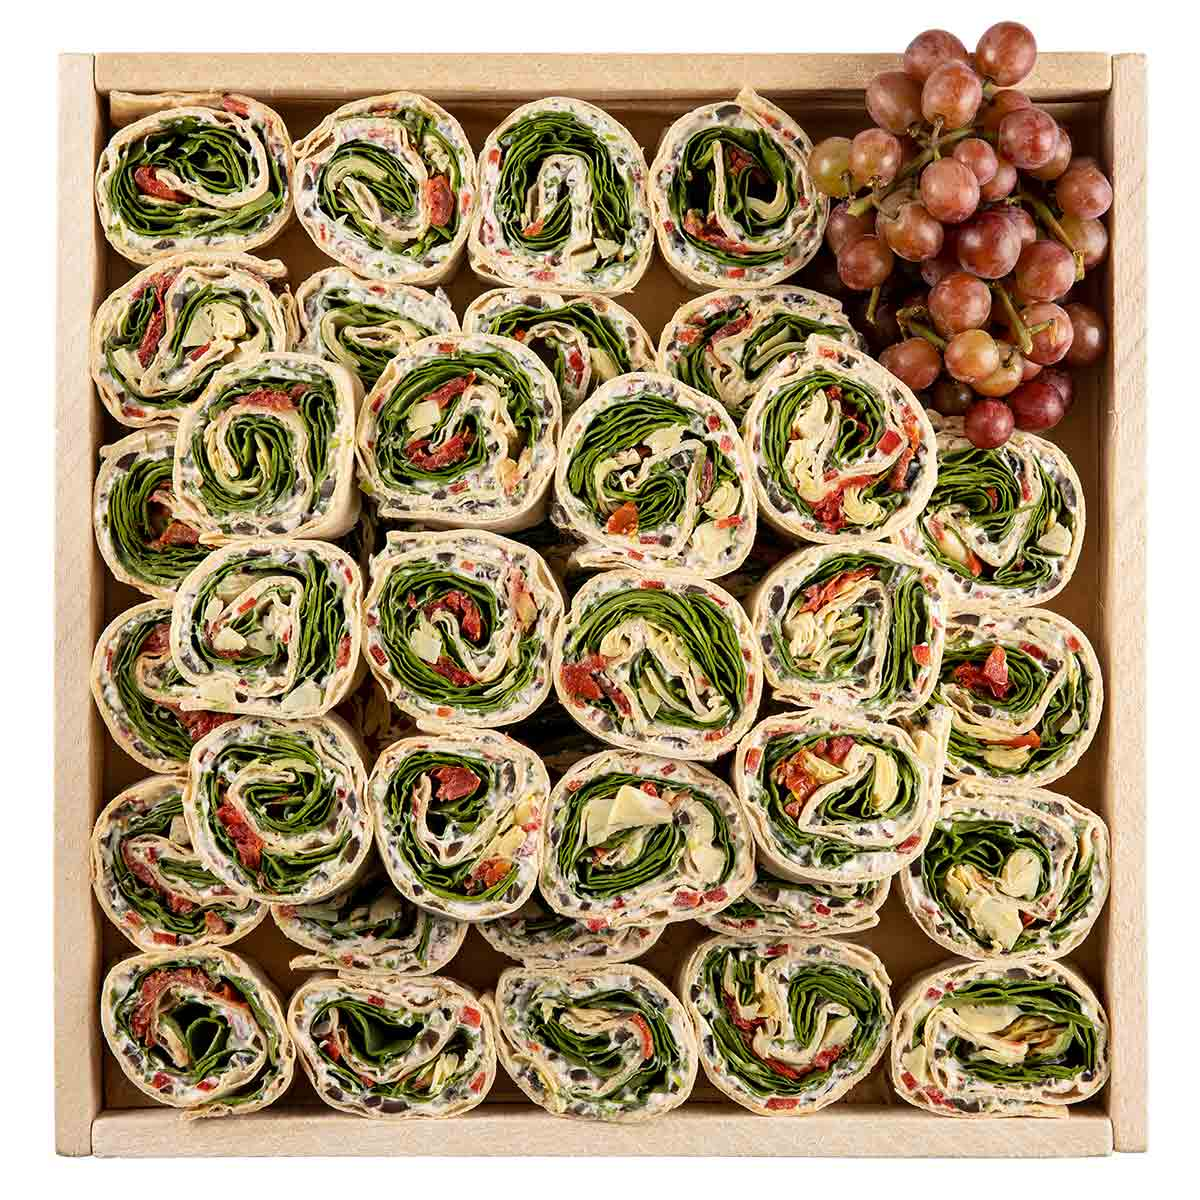 Gourmet aram wraps on a wooden tray